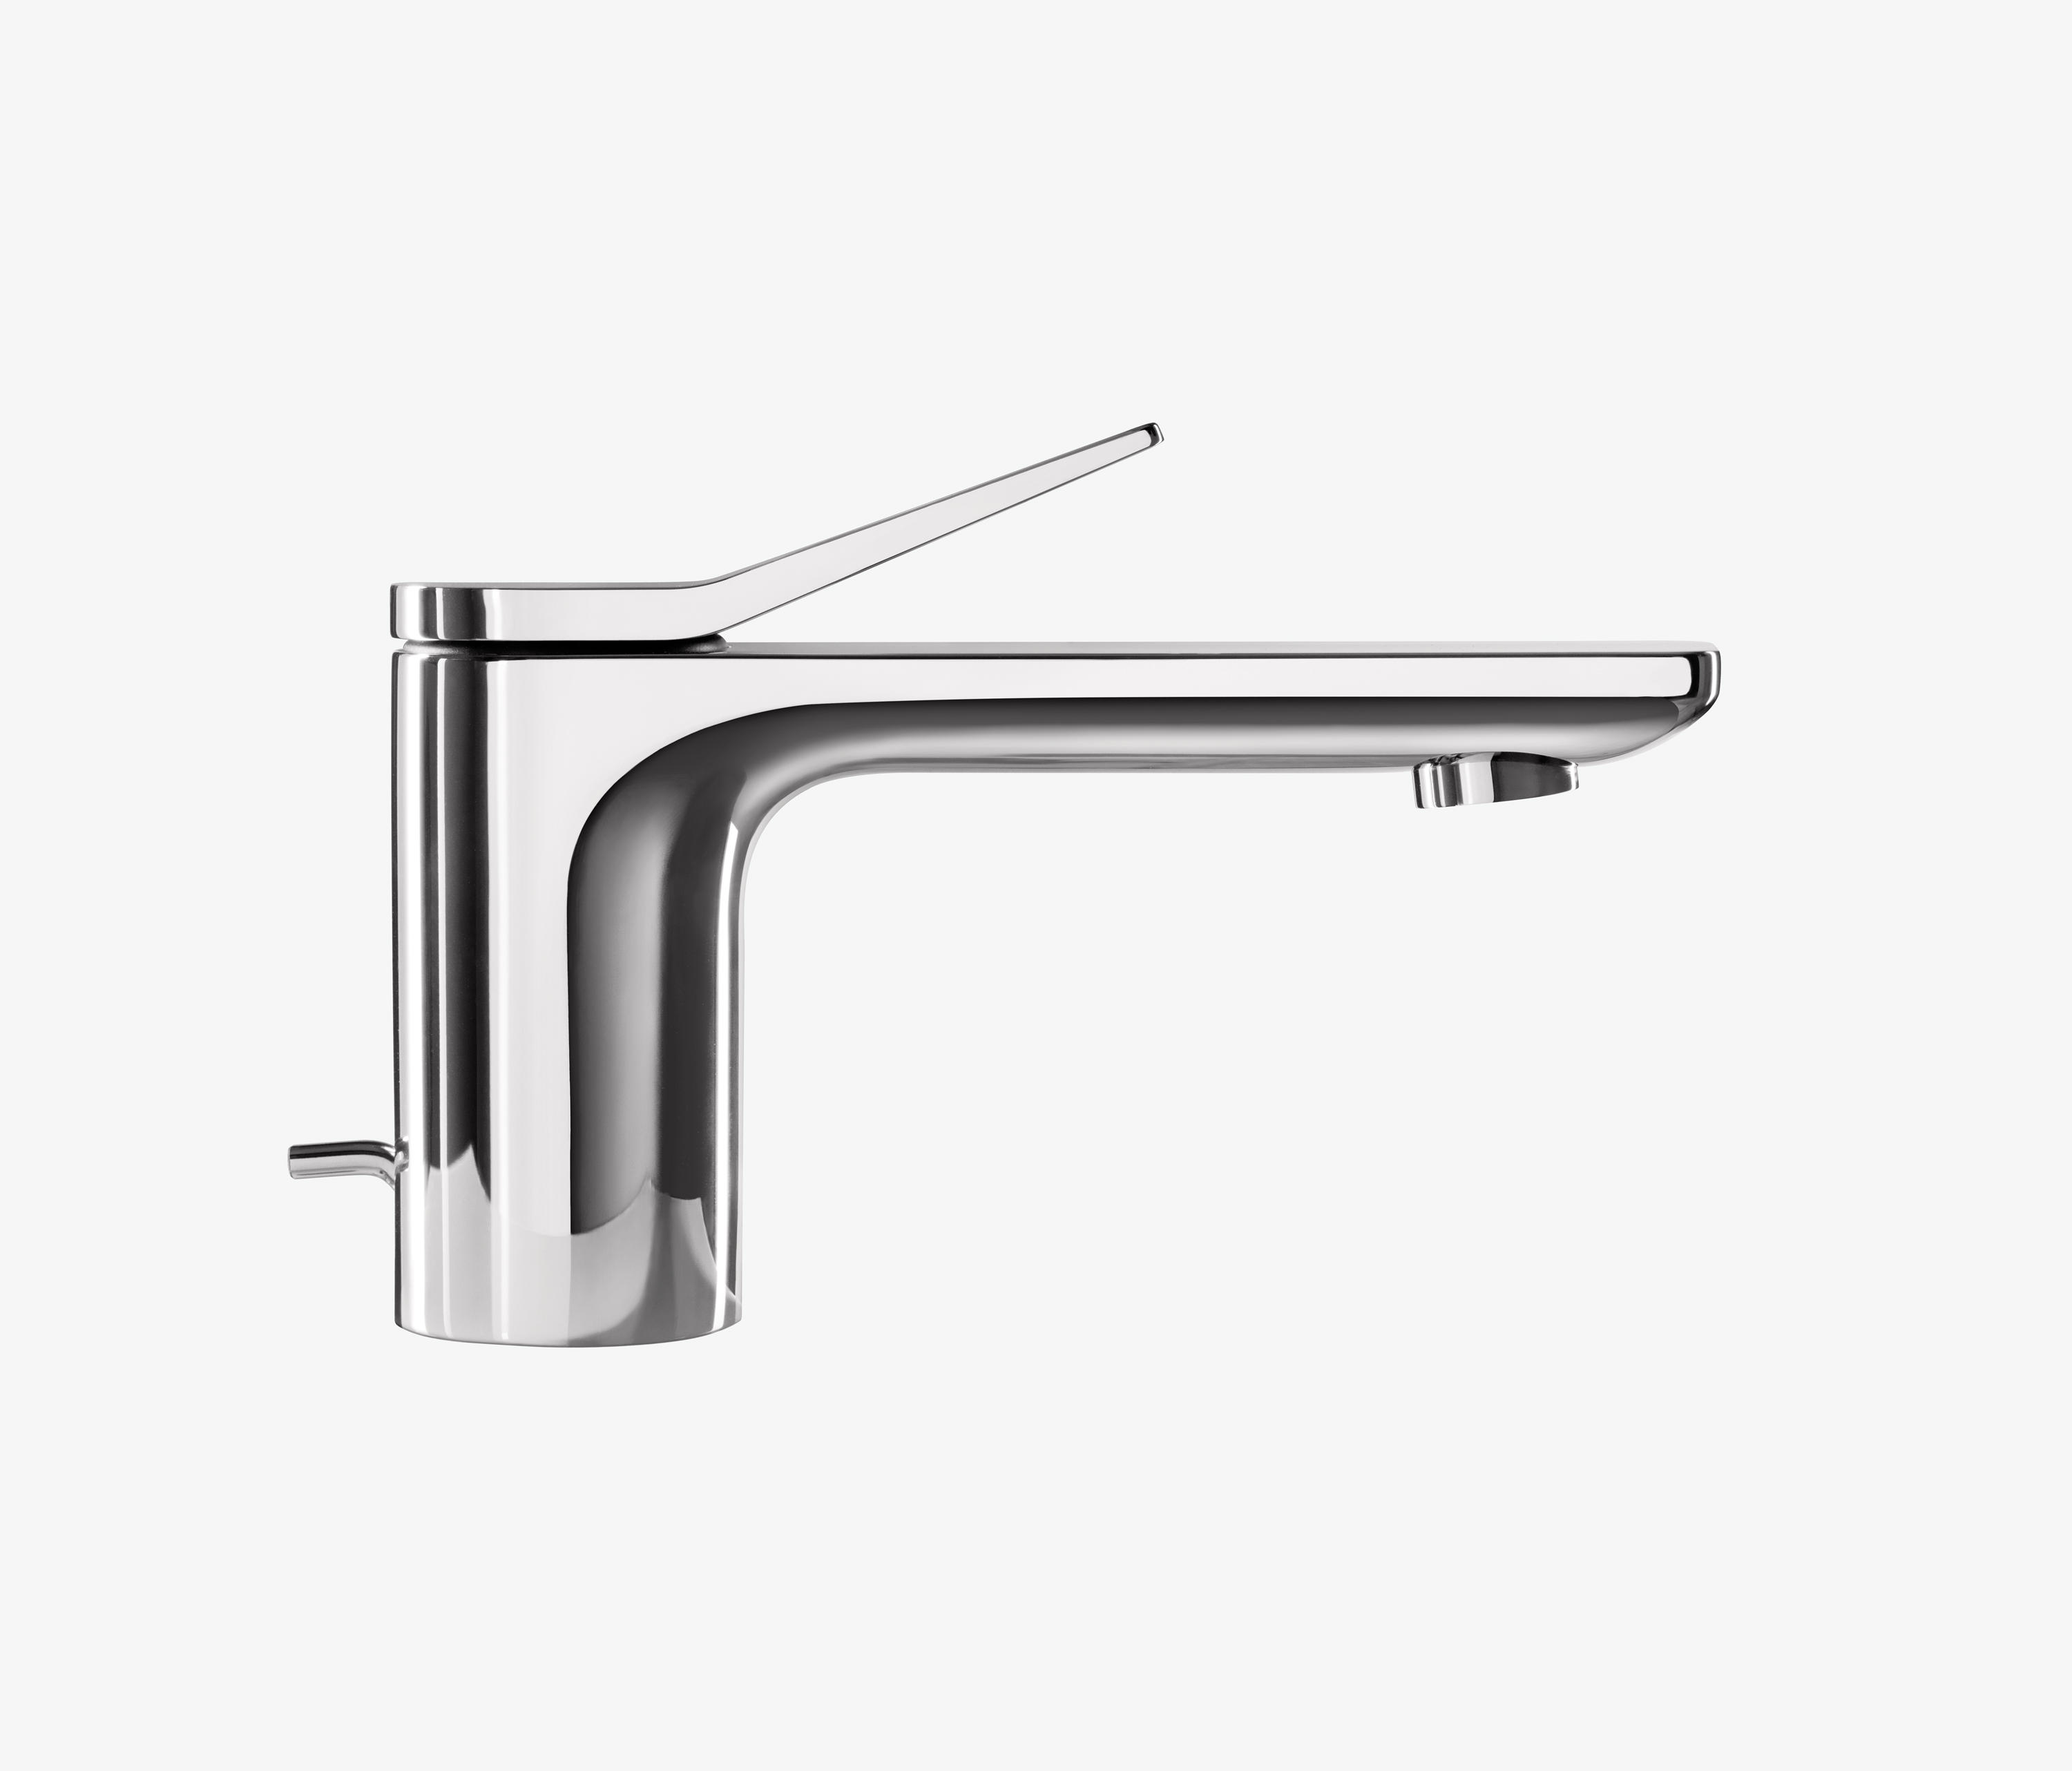 taps wash single en dornbracht basin b lever by mem product ga faucet from mixer